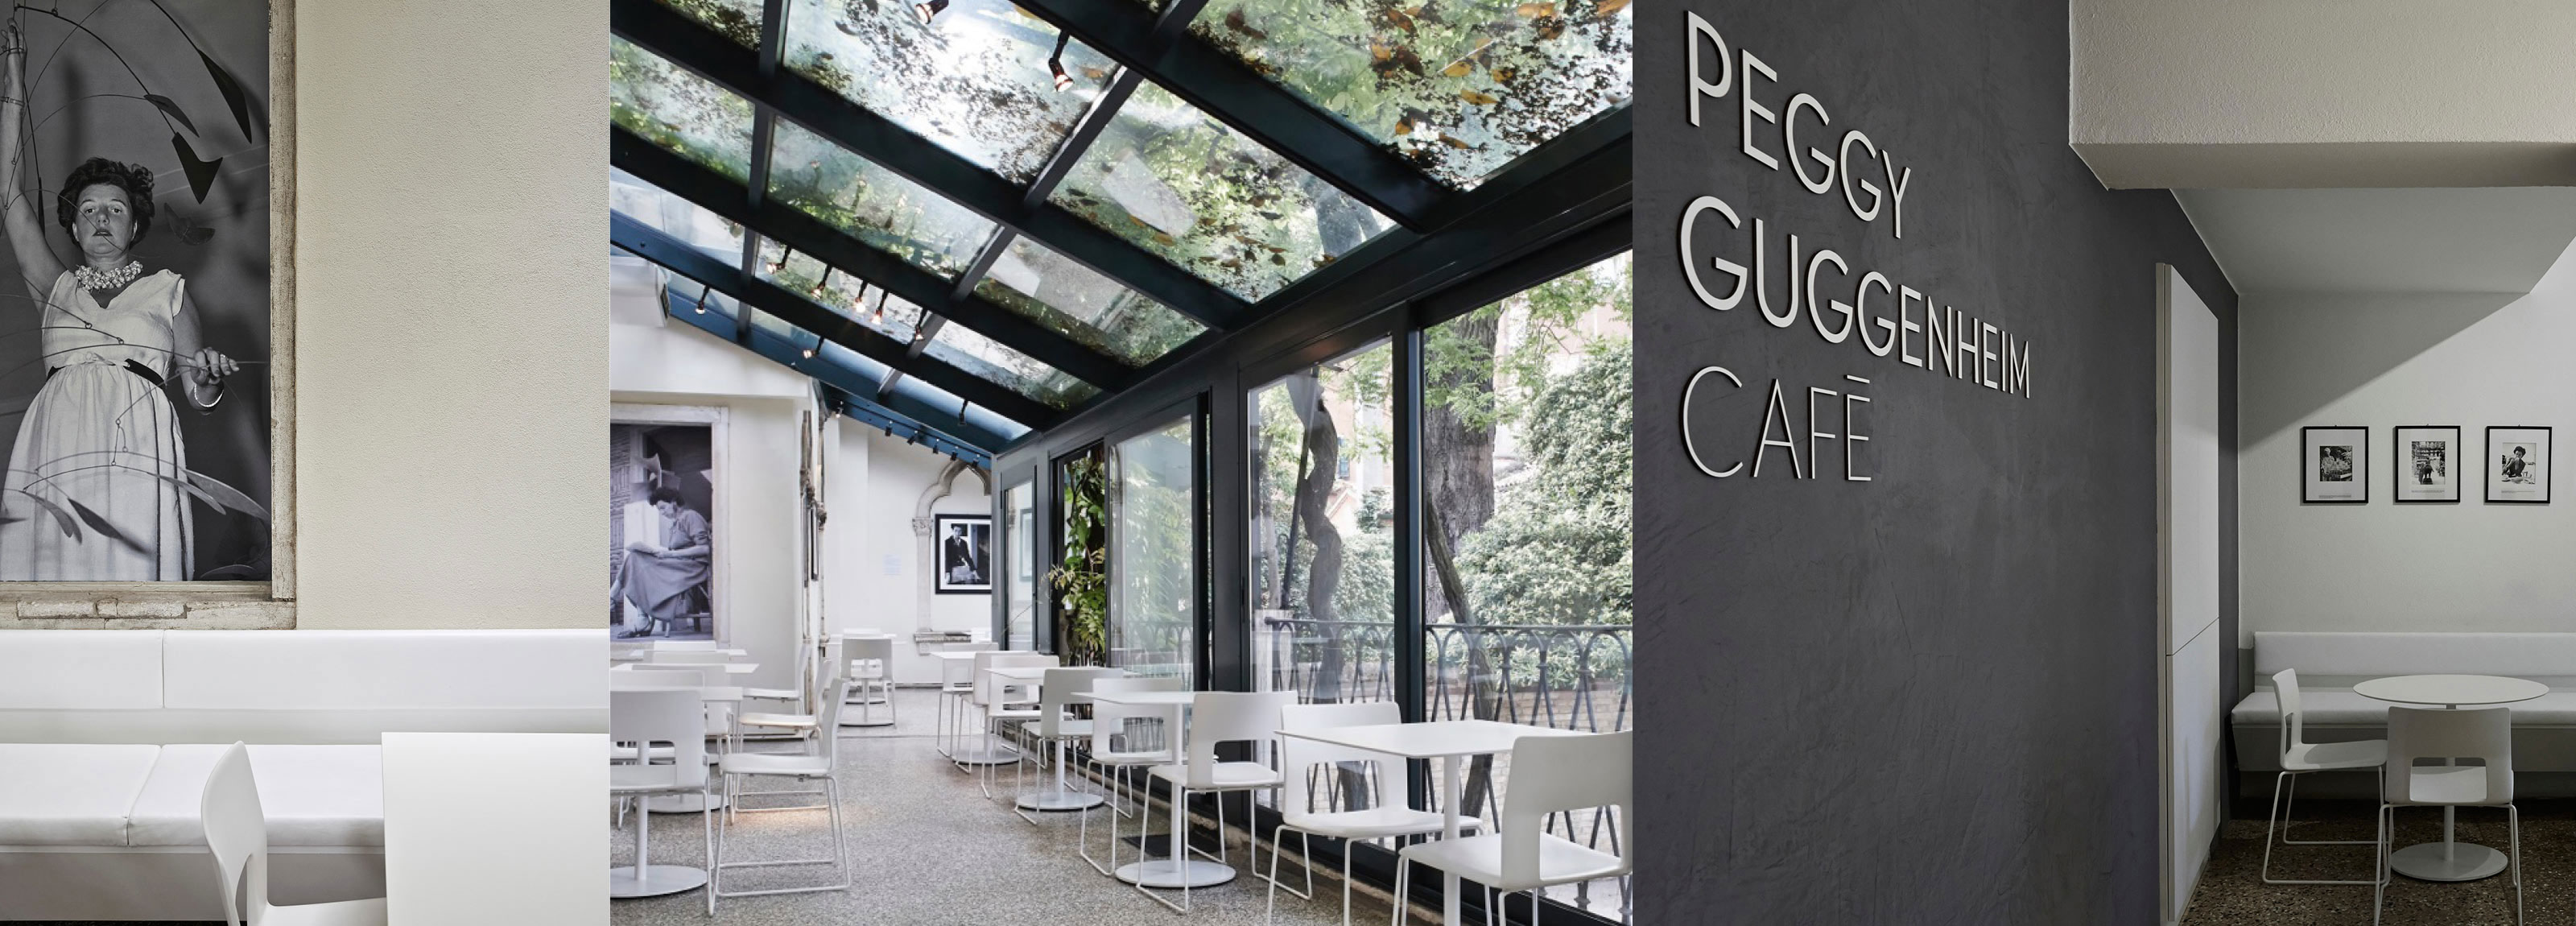 Peggy Guggenheim Collection - Peggy Guggenheim Collection<br>Museum Café